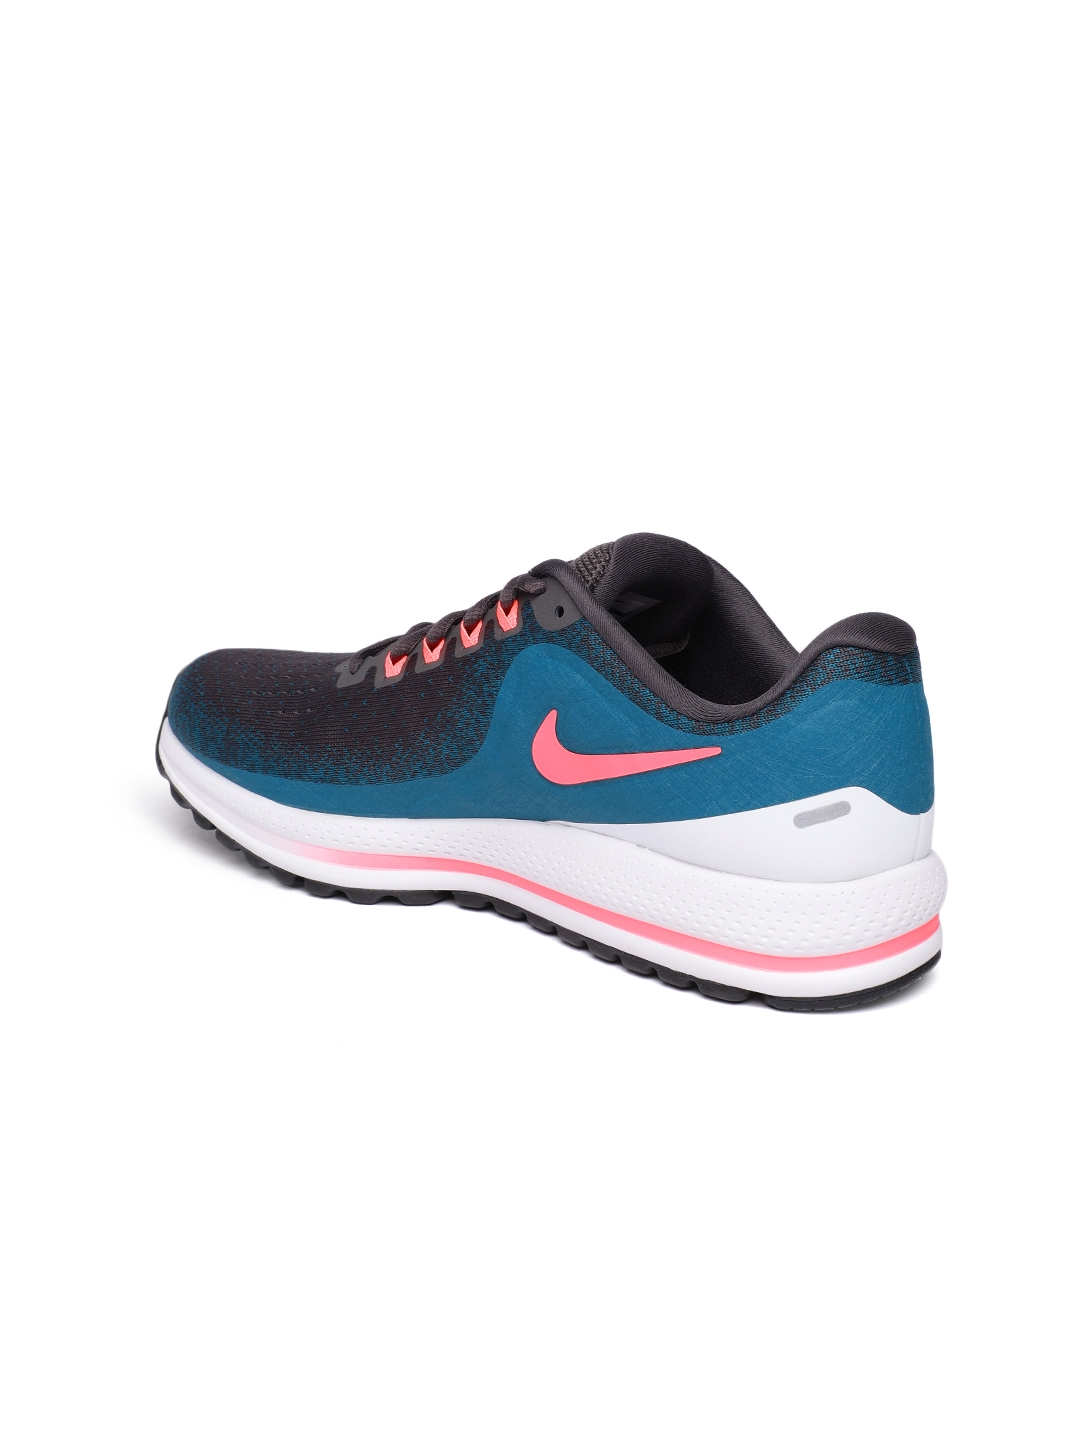 9c951b945ed7 Buy Nike Women Grey Air Zoom Vomero 13 Running Shoes - Sports Shoes ...